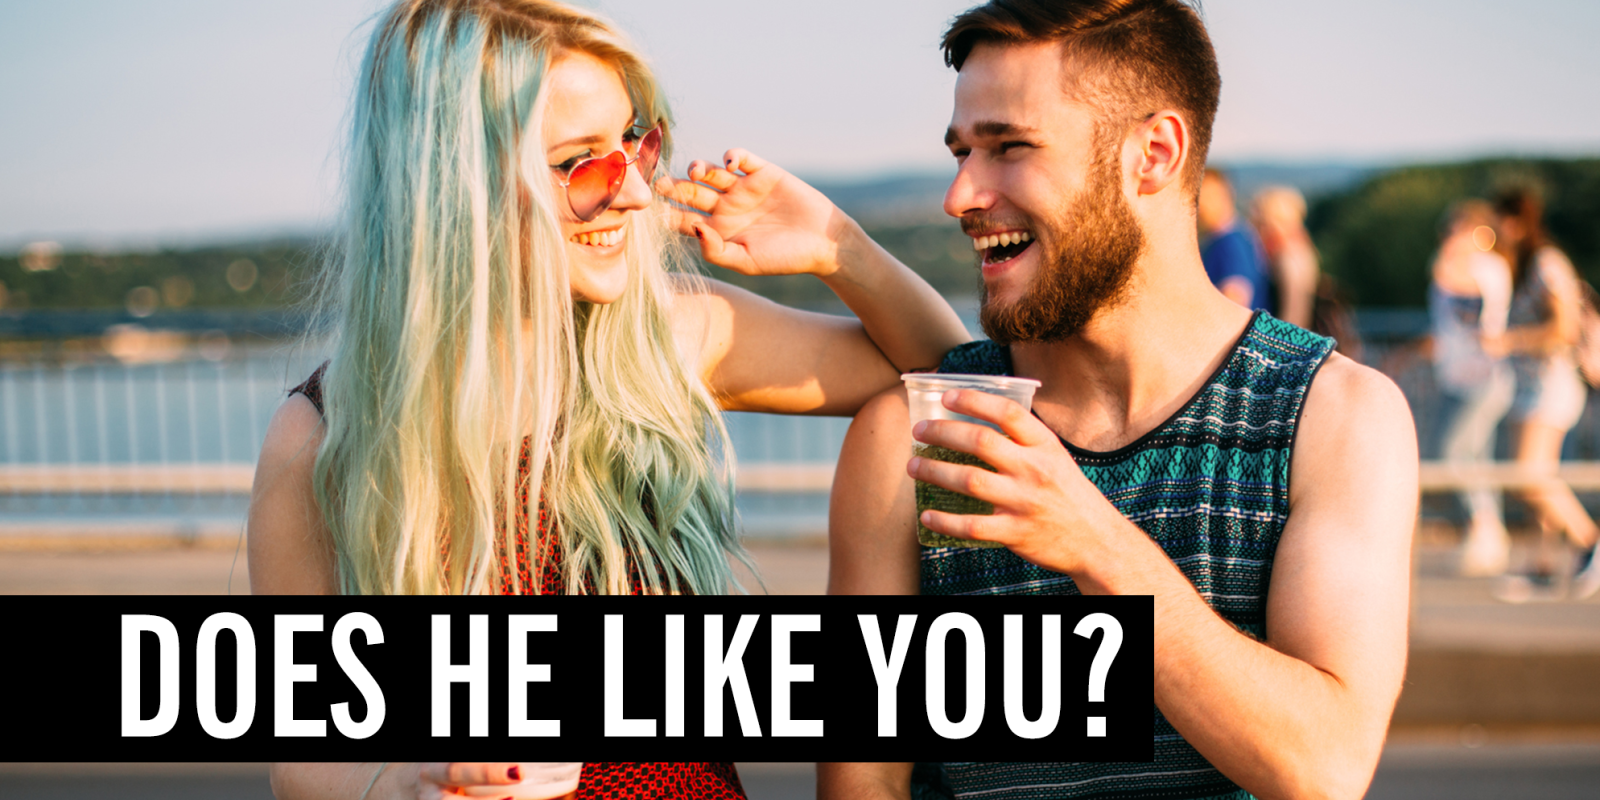 Friends with benefits or dating quiz